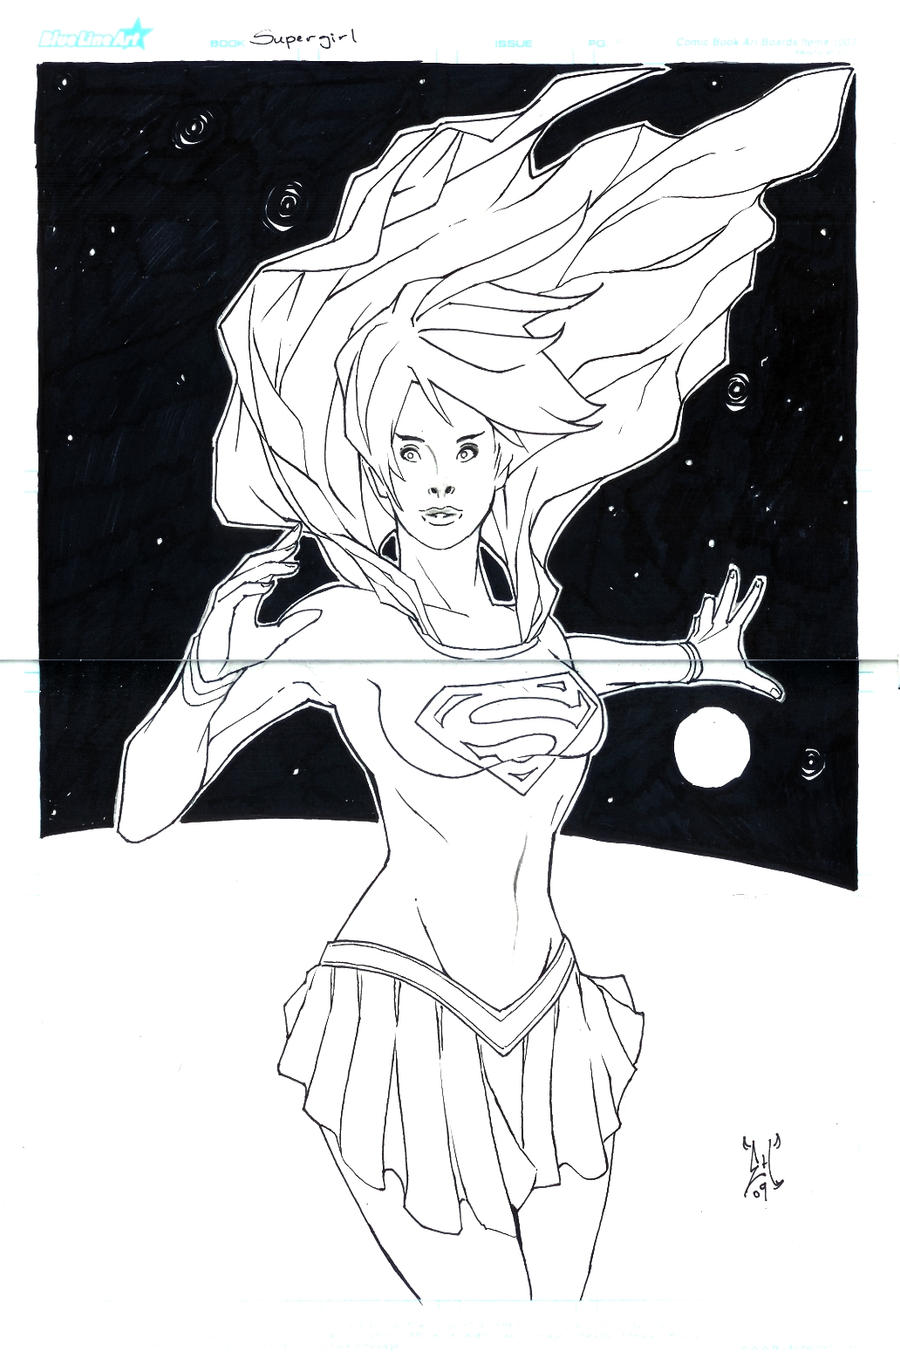 Supergirl - Space by eHillustrations